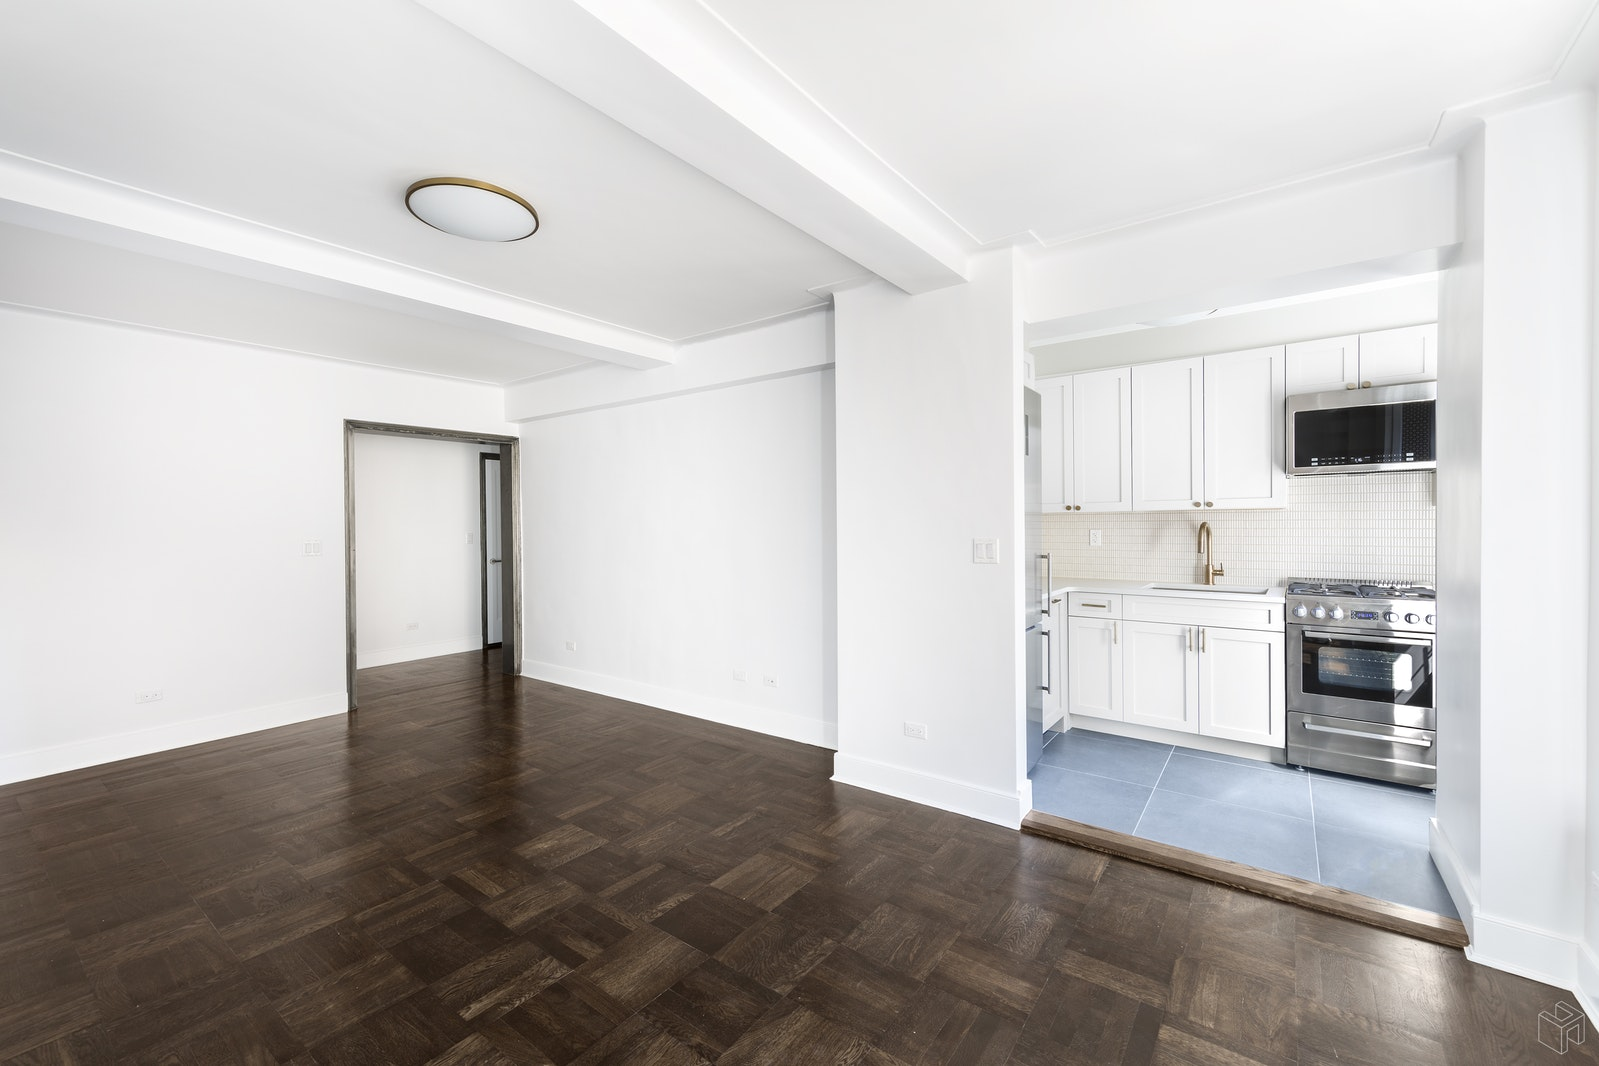 56 Seventh Avenue 4f, West Village, NYC, 10011, Price Not Disclosed, Rented Property, Halstead Real Estate, Photo 1